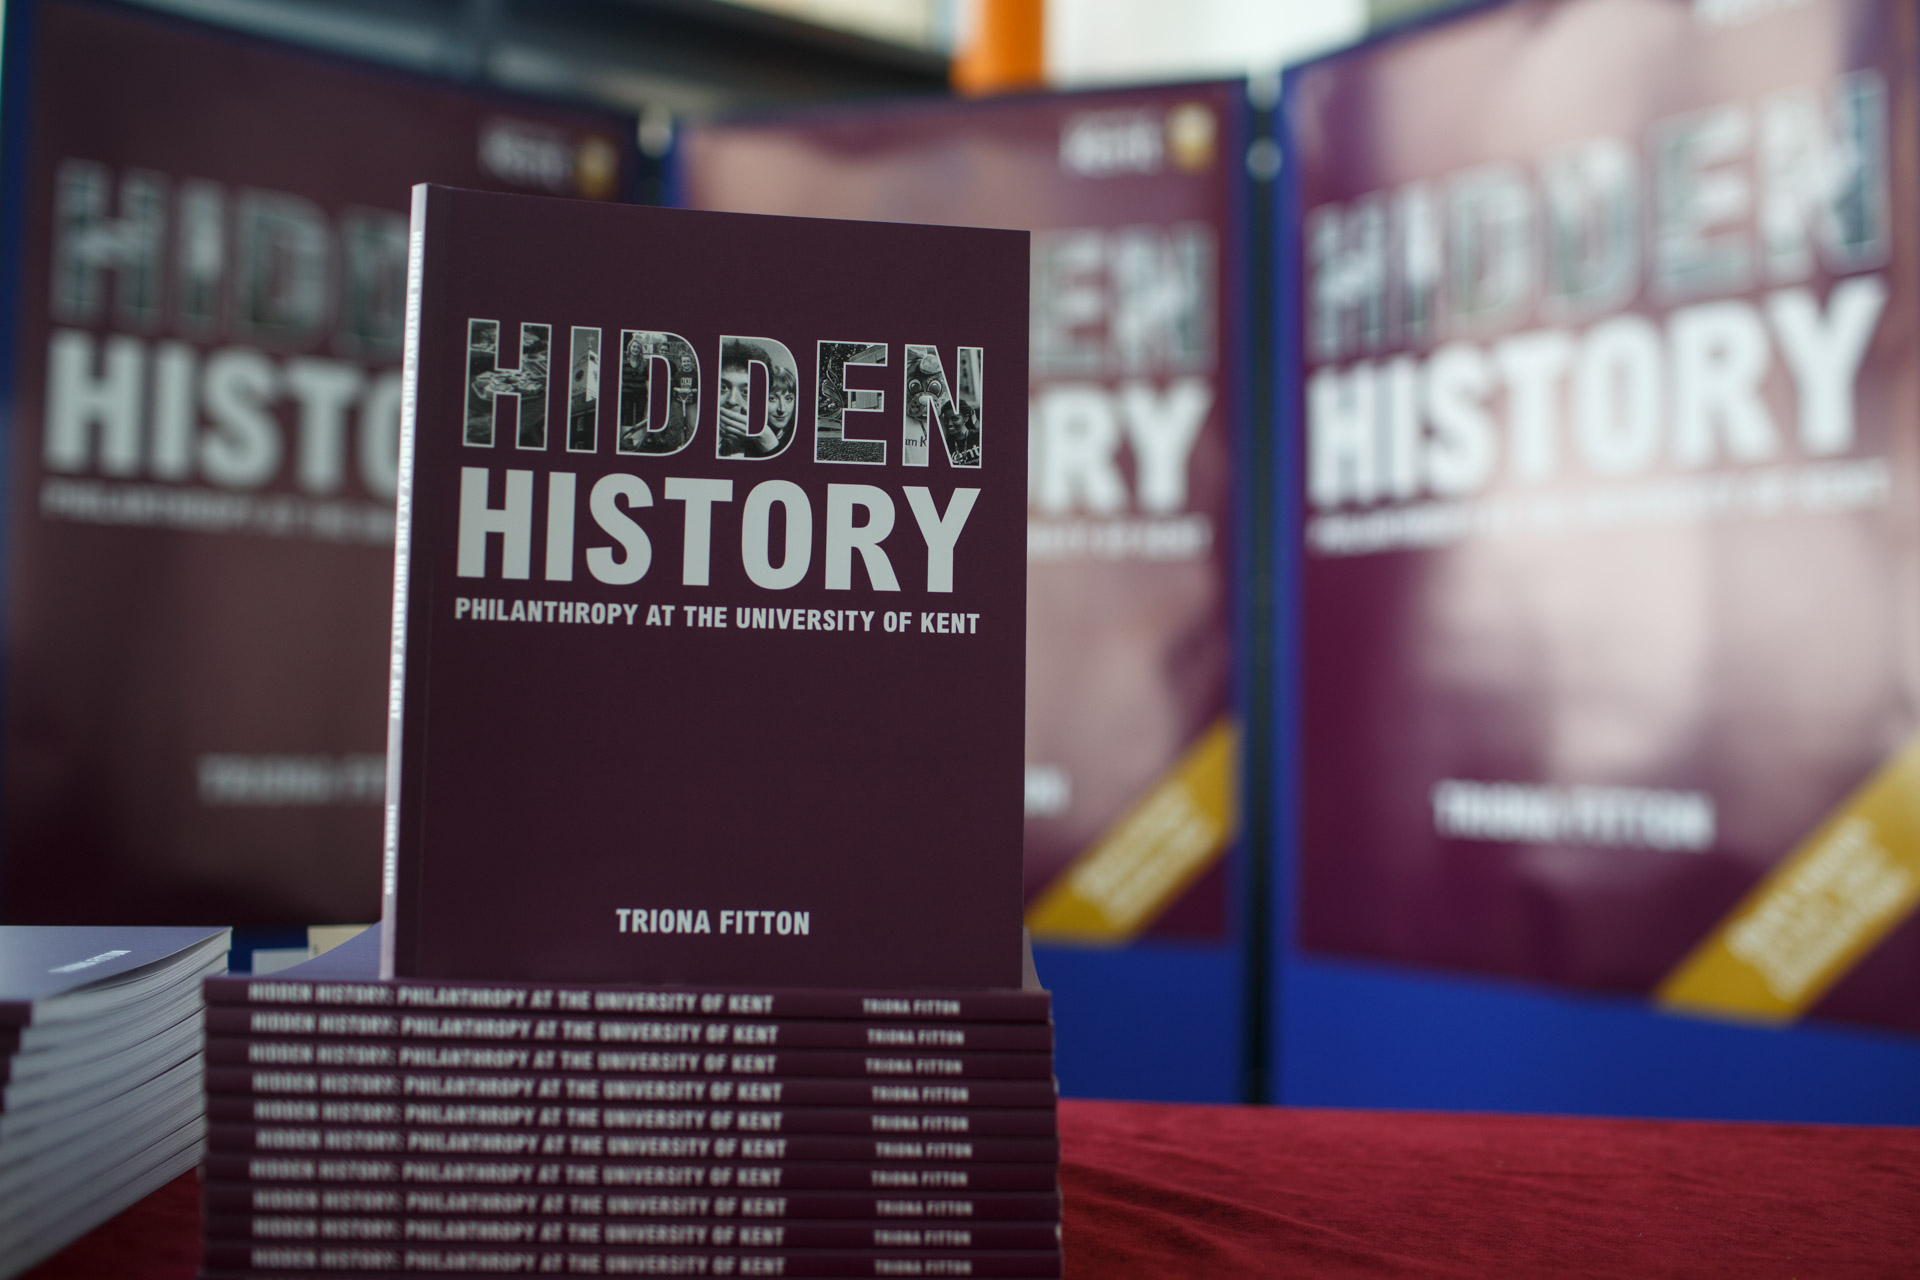 Hidden History by Triona Fitton